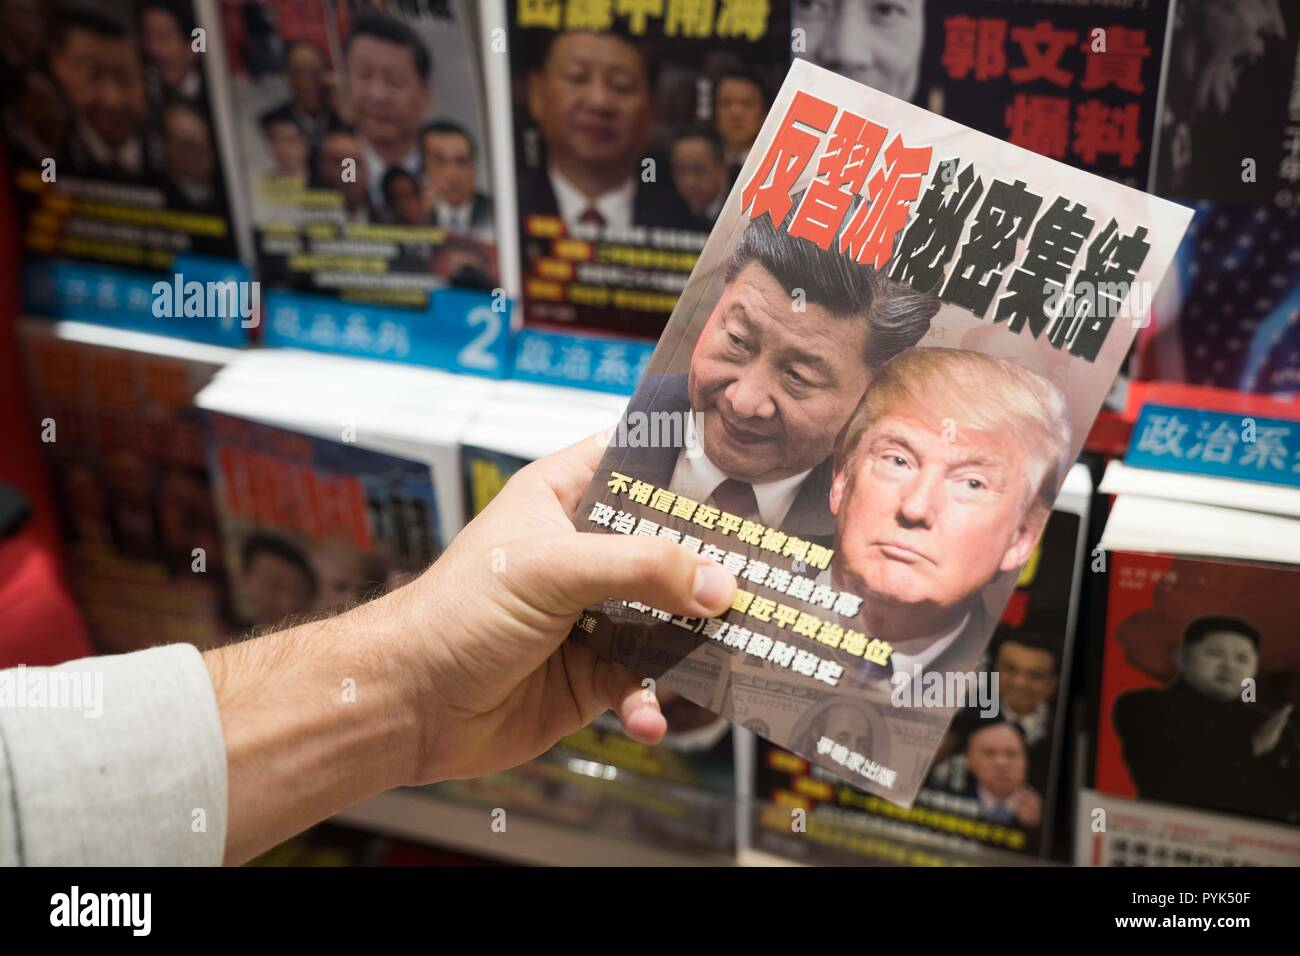 Hong Kong, China. 14th Oct, 2018. A book about the relationship between US president Donald Trump and the Chinese leader Xi Jinping seen on sale in a book shop in Hong Kong airport. Credit: Geovien So/SOPA Images/ZUMA Wire/Alamy Live News - Stock Image